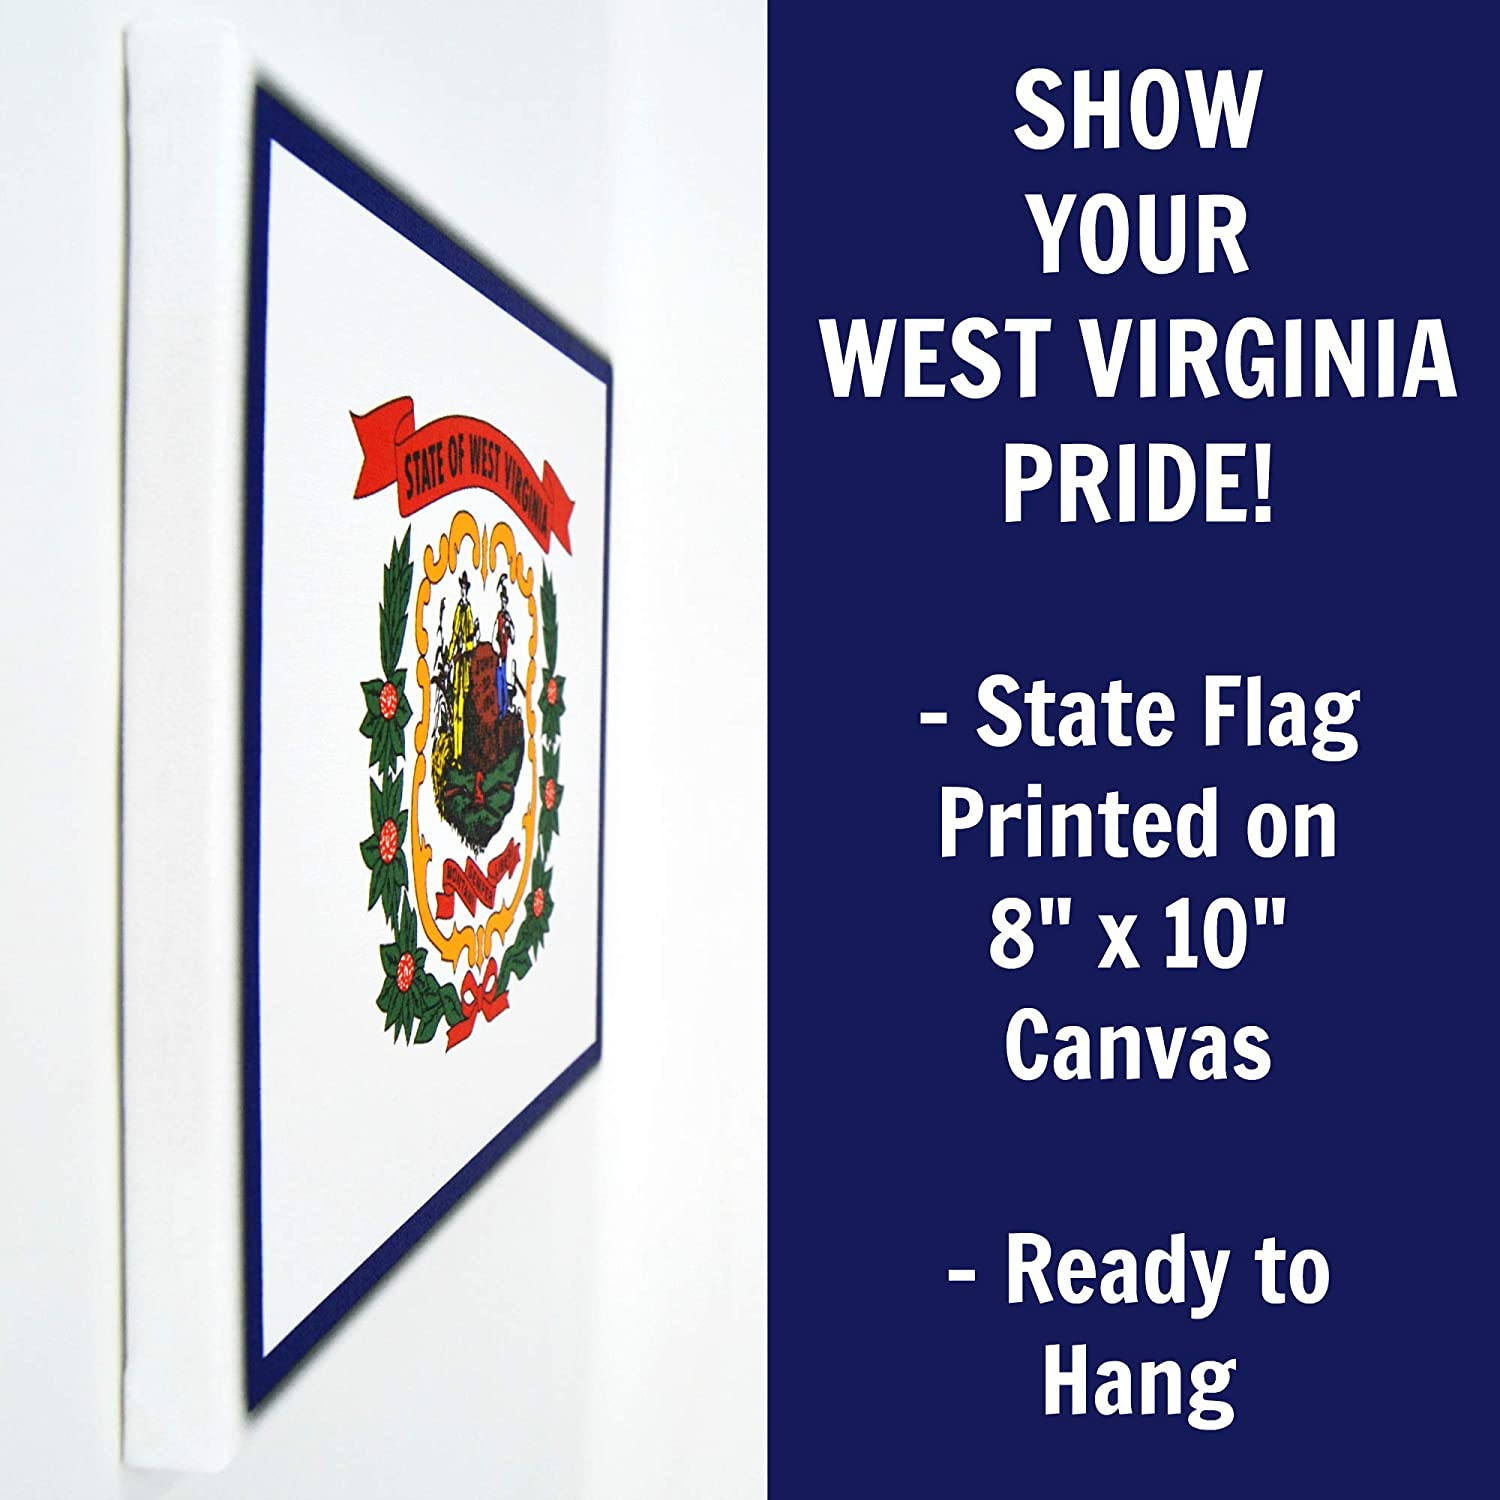 Amazon Com West Virginia Flag Wall Decor 8x10 Decorative Wv Canvas Wall Art Prints Ready To Hang West Virginia Decor Home State Pride Collection Wva Gifts And Decorations Handmade